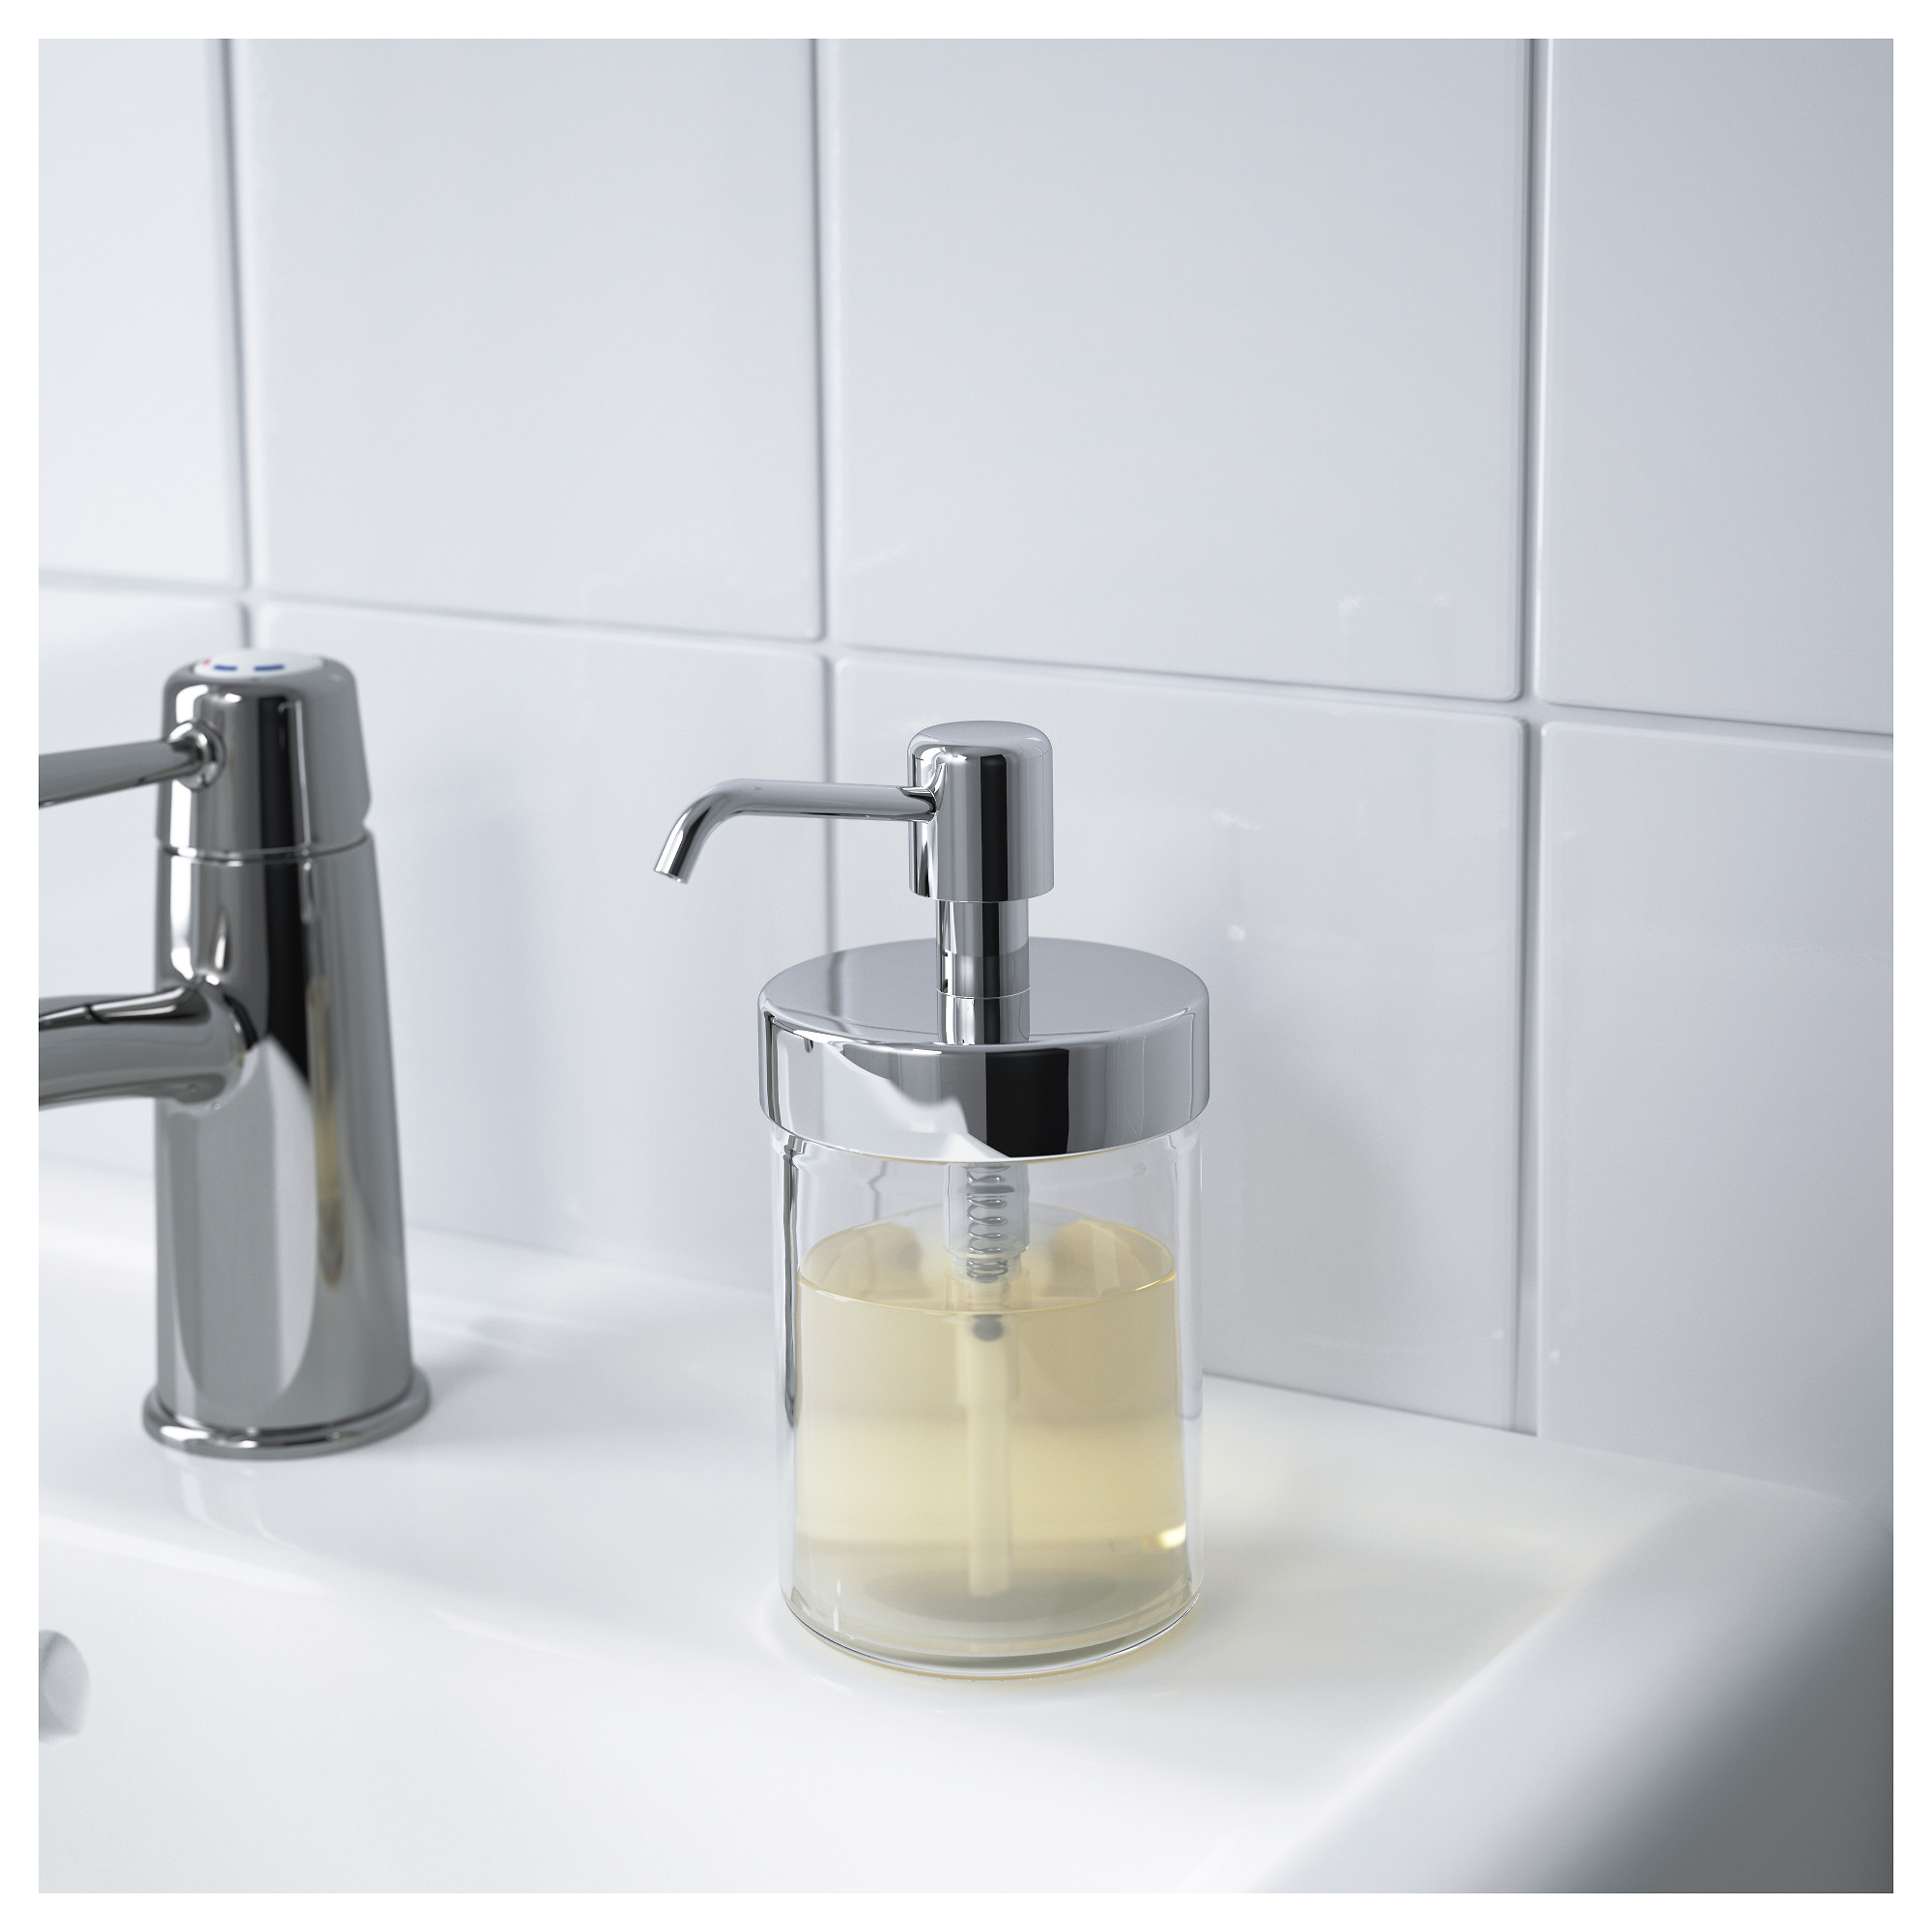 VOXNAN Soap dispenser IKEA